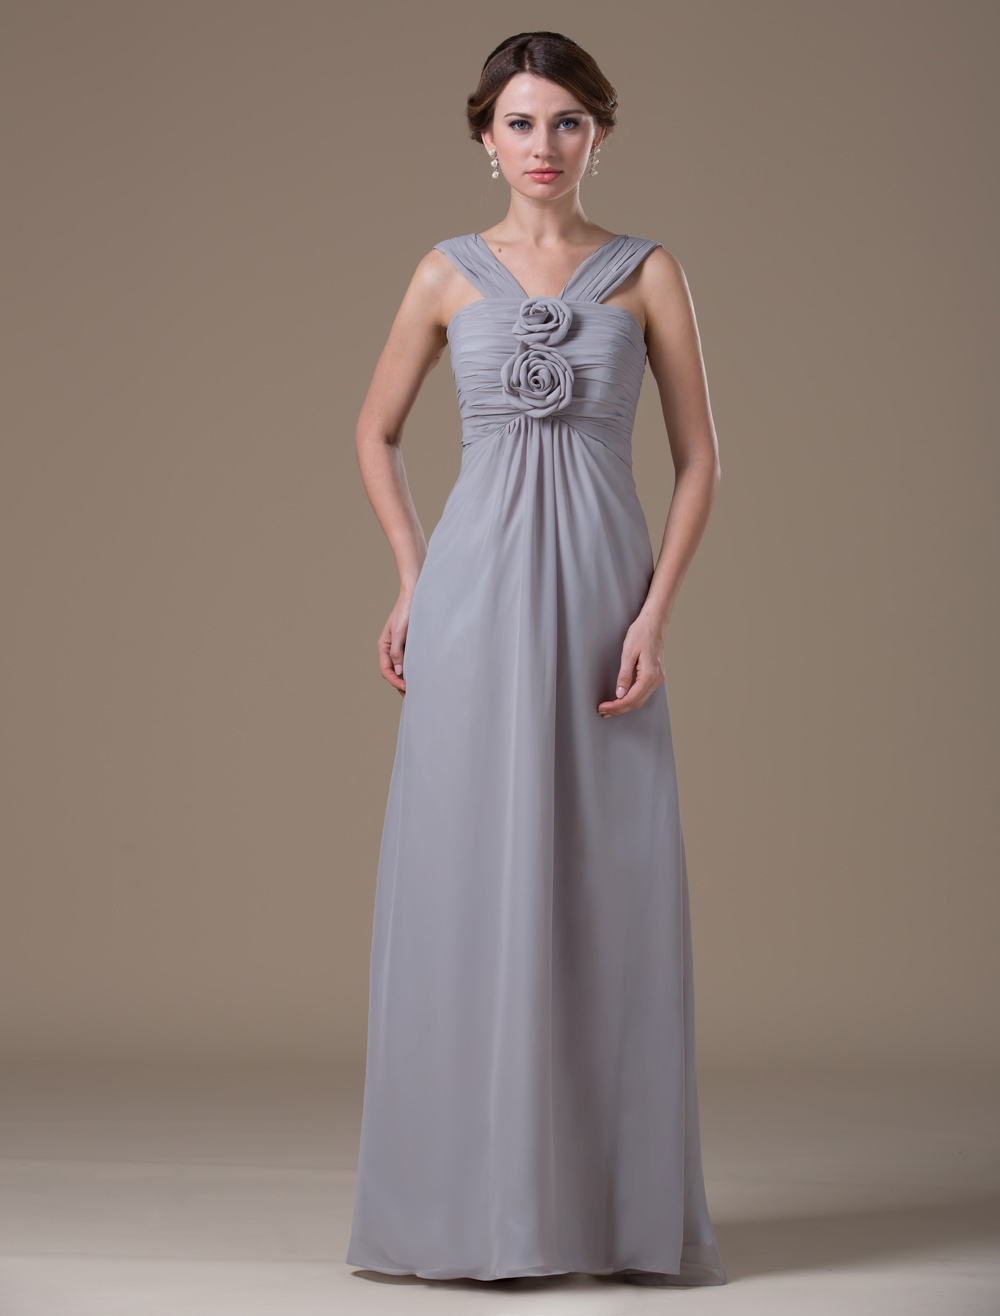 Chiffon Halter Floor Length Maternity Bridesmaid Dress